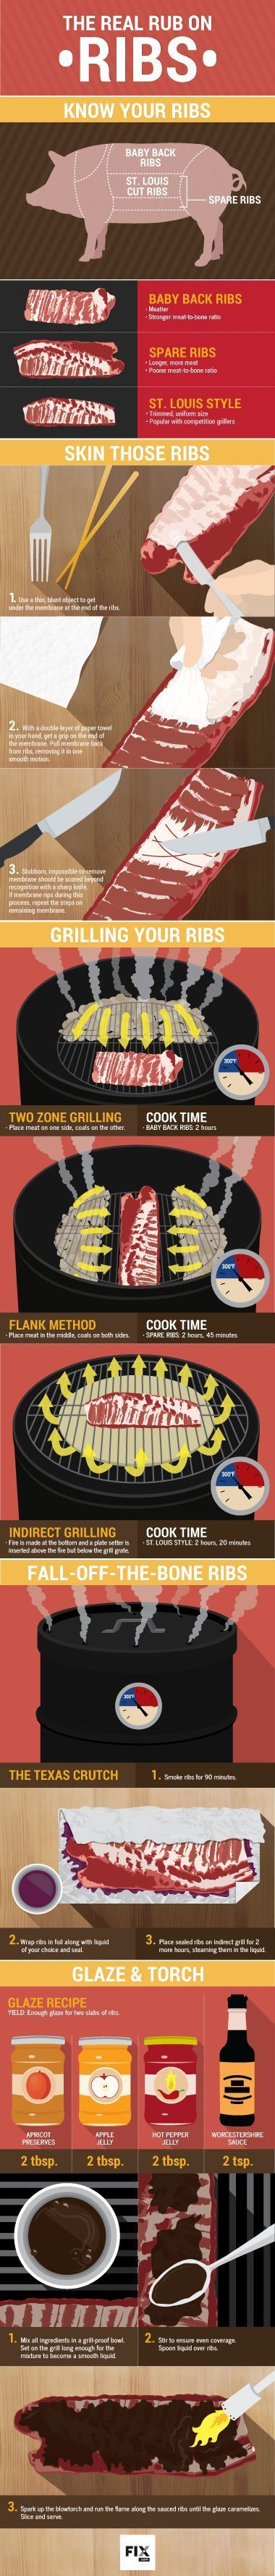 how to cook perfect ribs on the grill